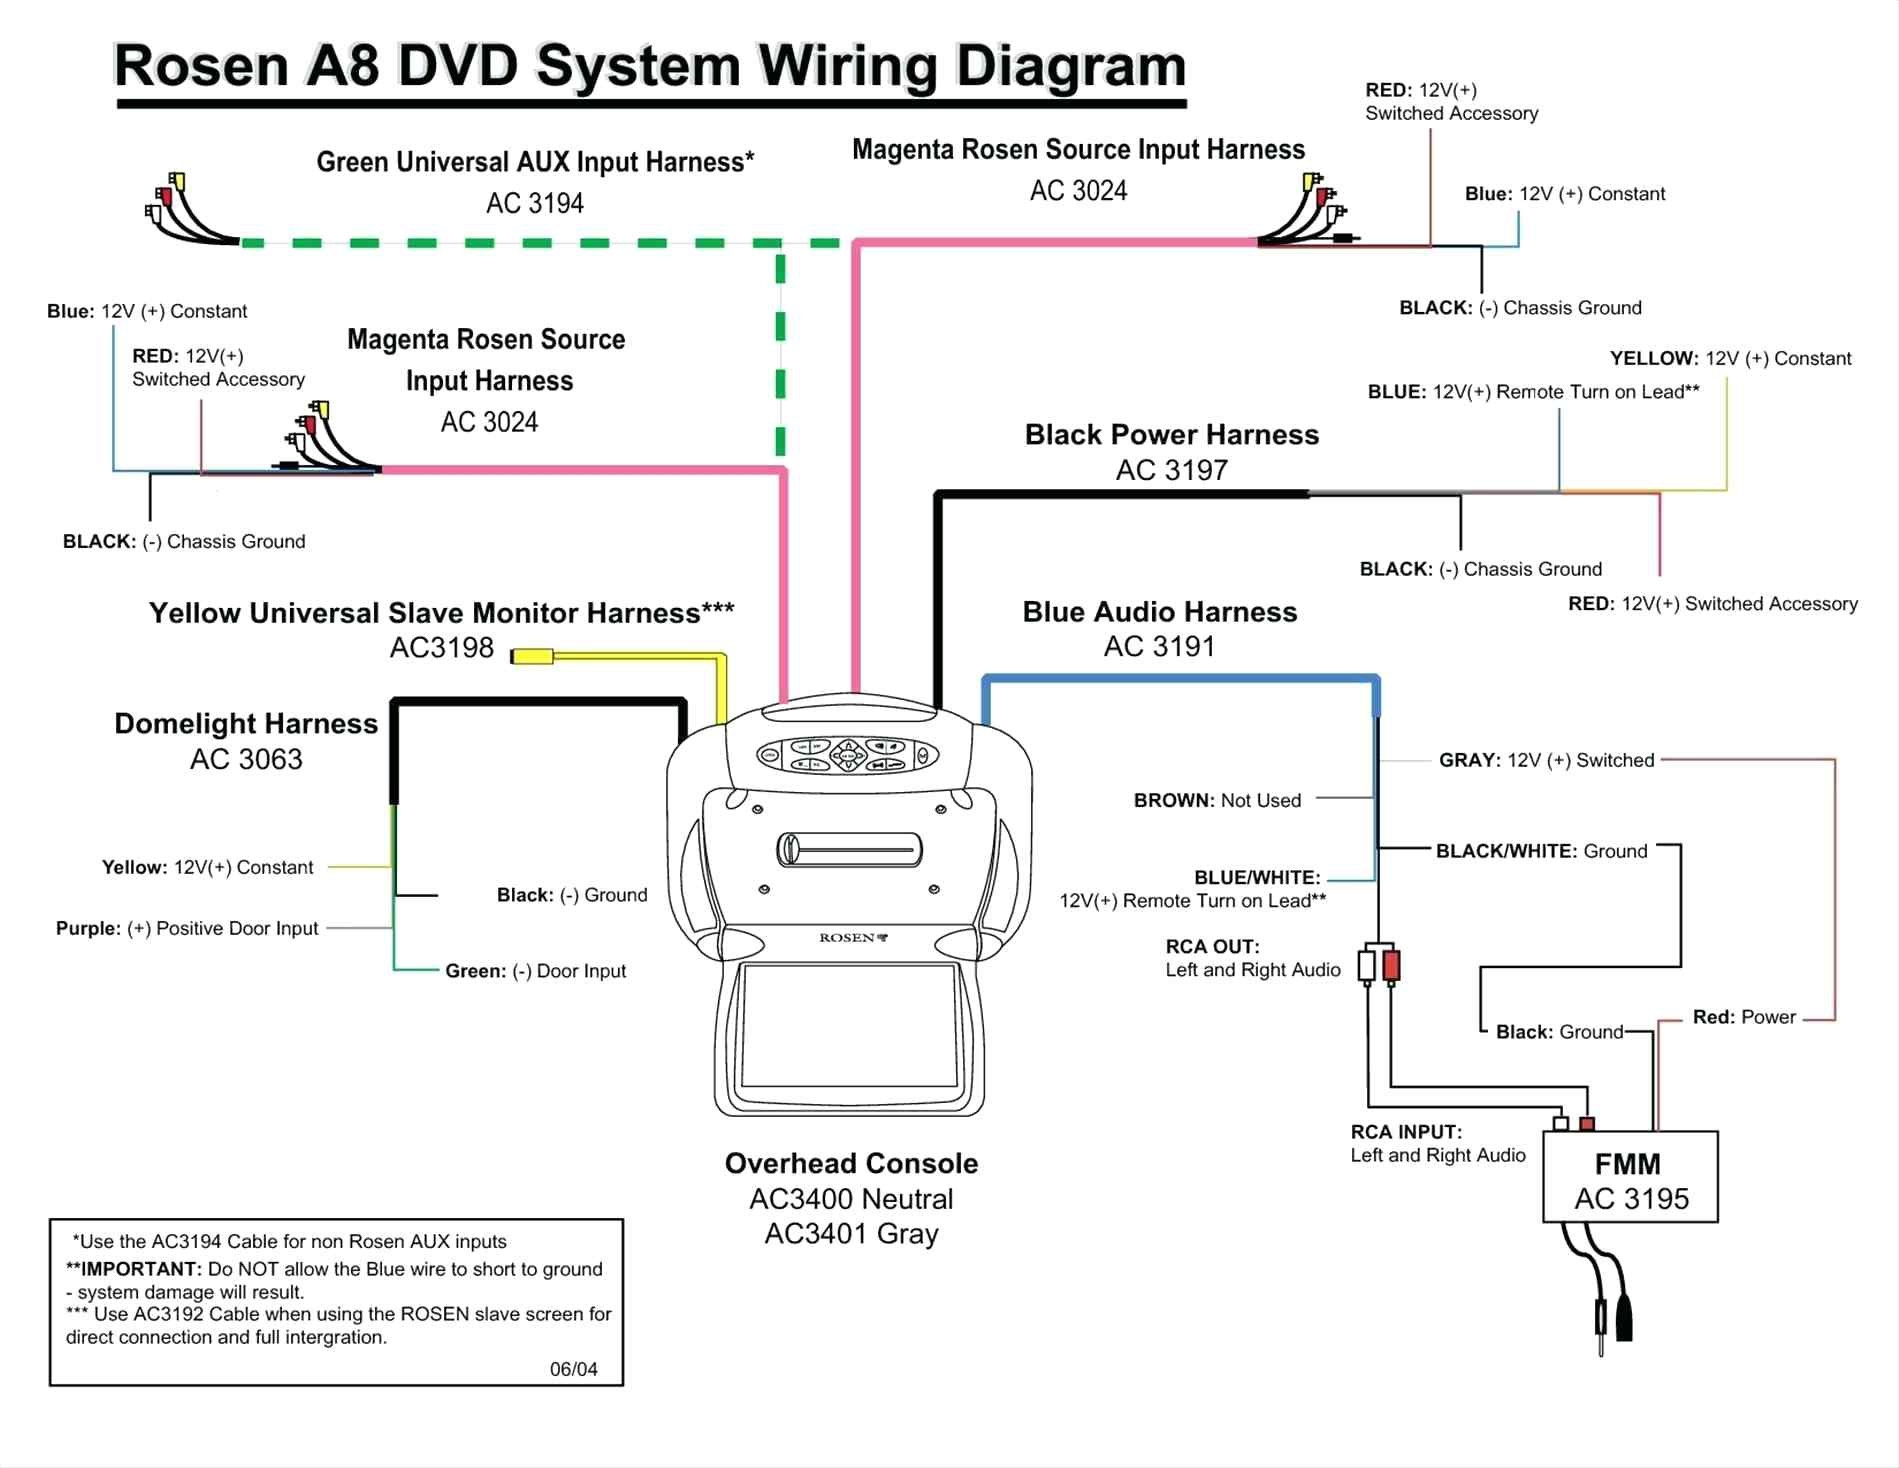 boost transformer wiring diagram Download-square d buck boost transformer wiring diagram Collection Buck Boost Transformer Wiring Diagram Lovely Square 12-r